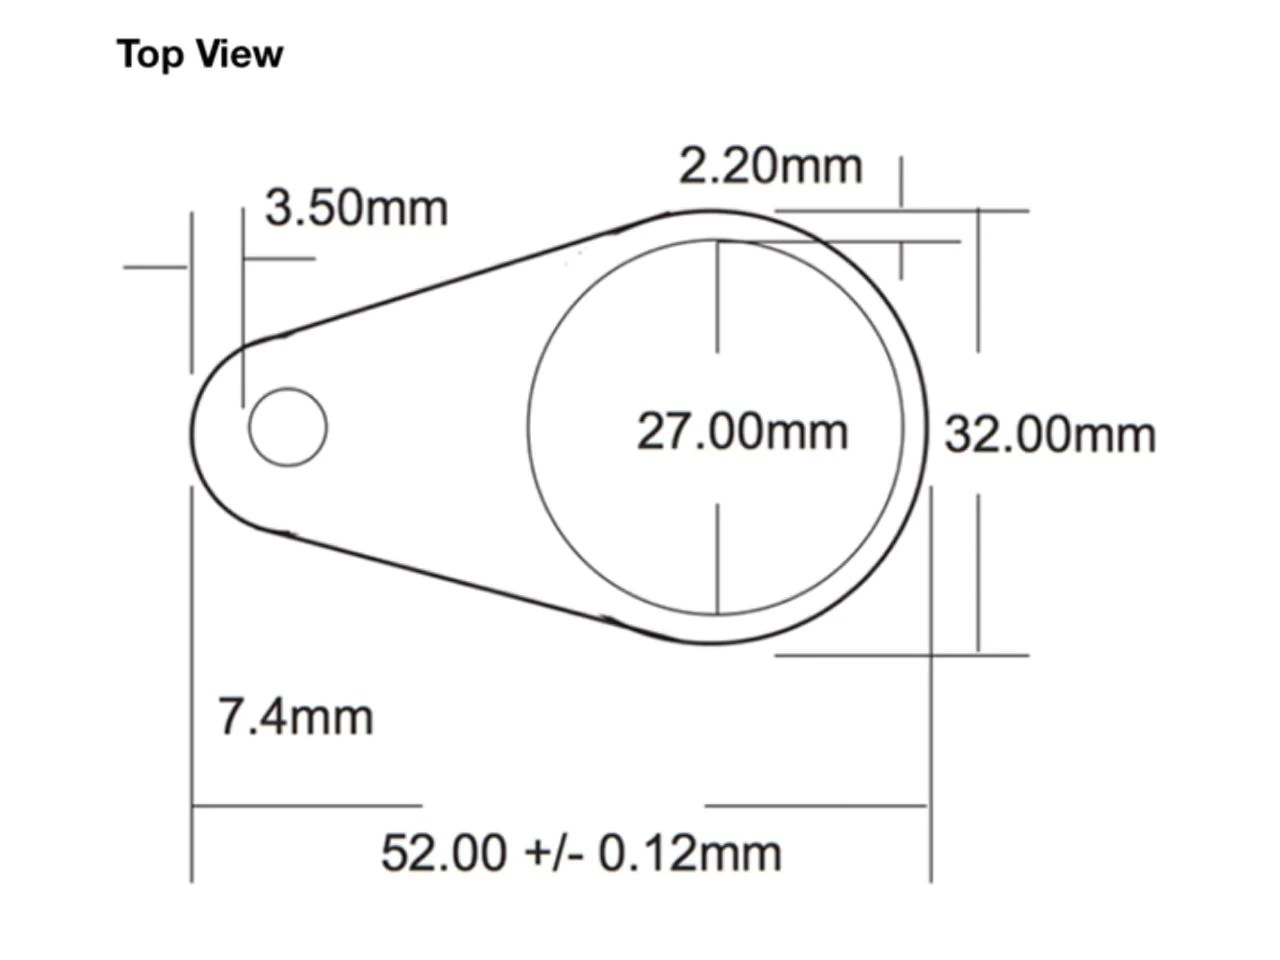 medium resolution of t5577 keyfob schematic top